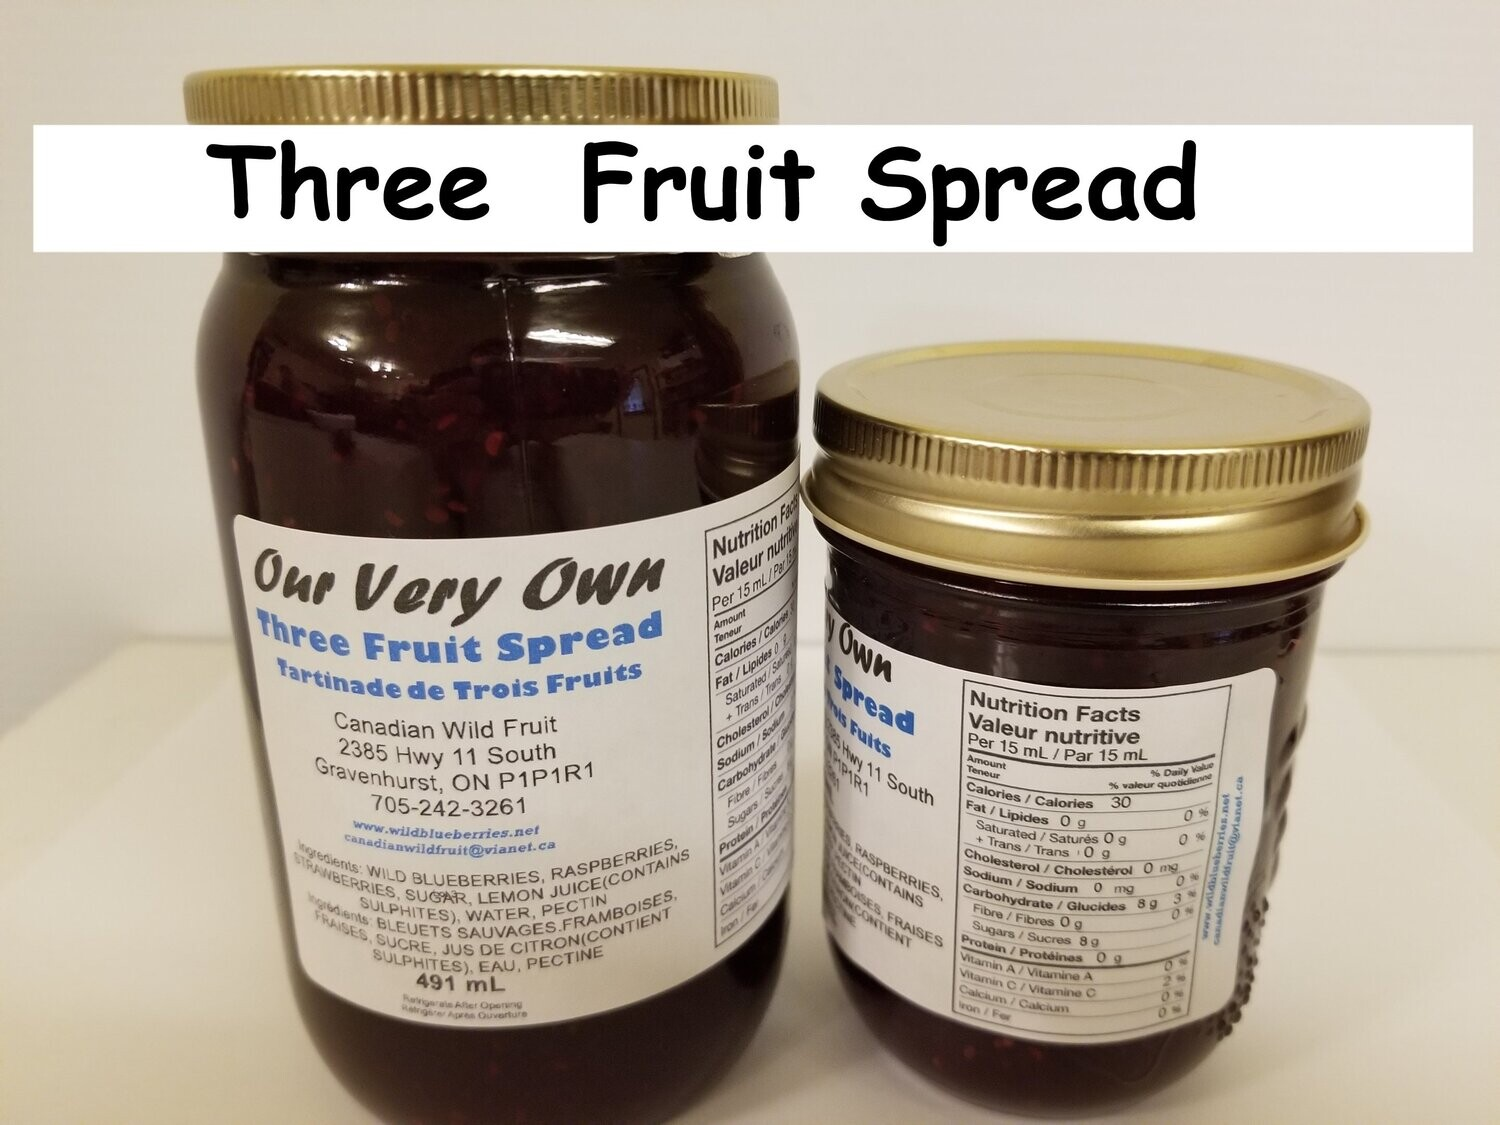 Our Very Own Fruit Spreads and Jellies, and Pepper Spreads